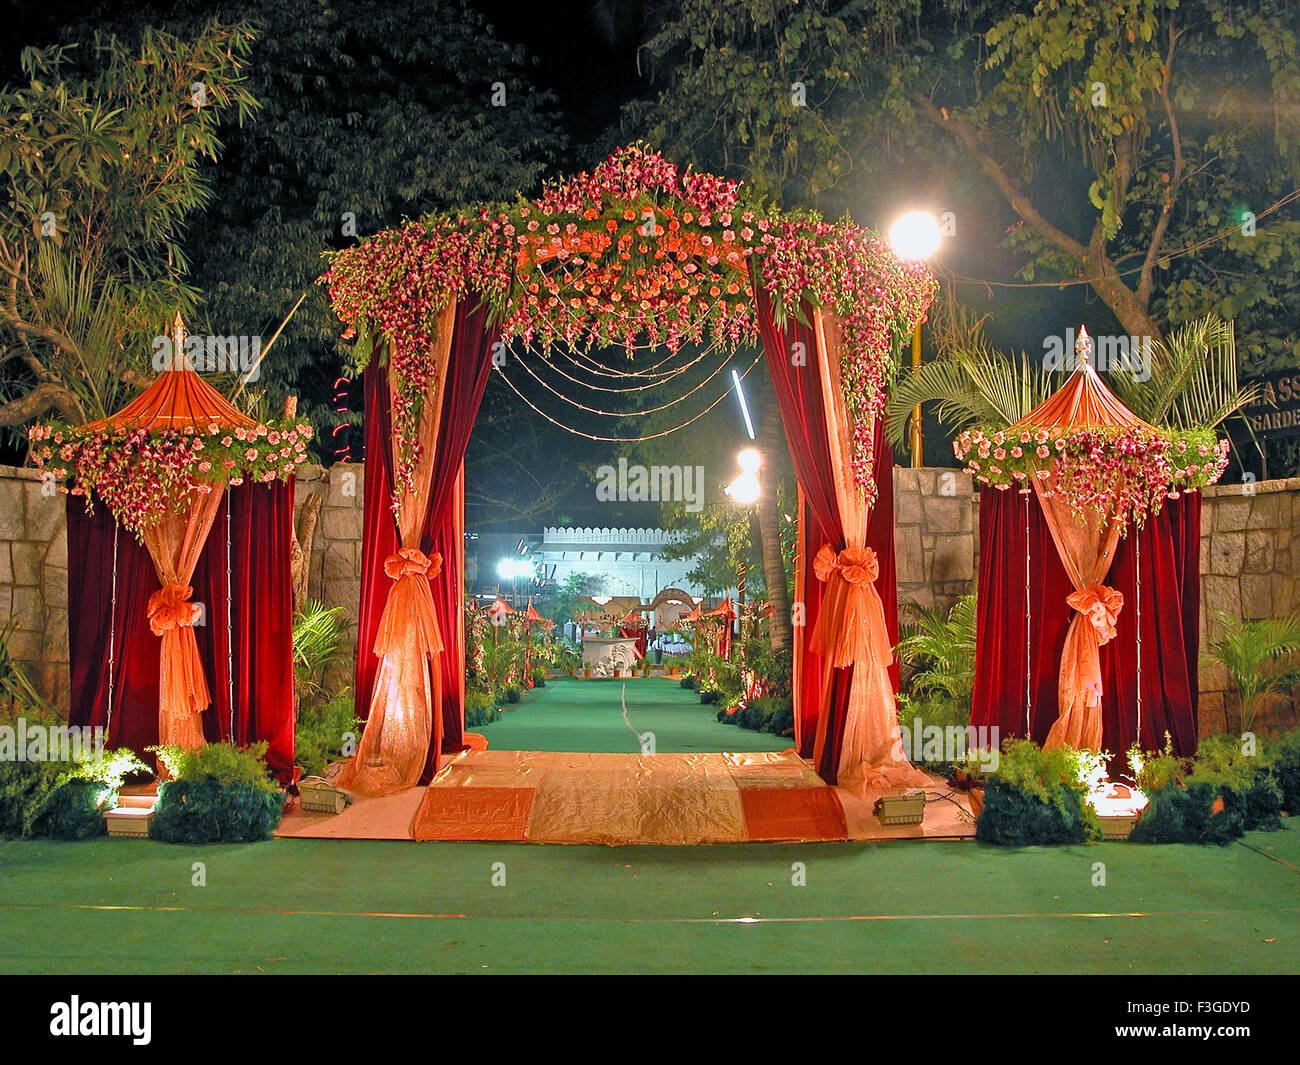 View of a wedding decoration india stock photo 88258001 alamy view of a wedding decoration india junglespirit Image collections